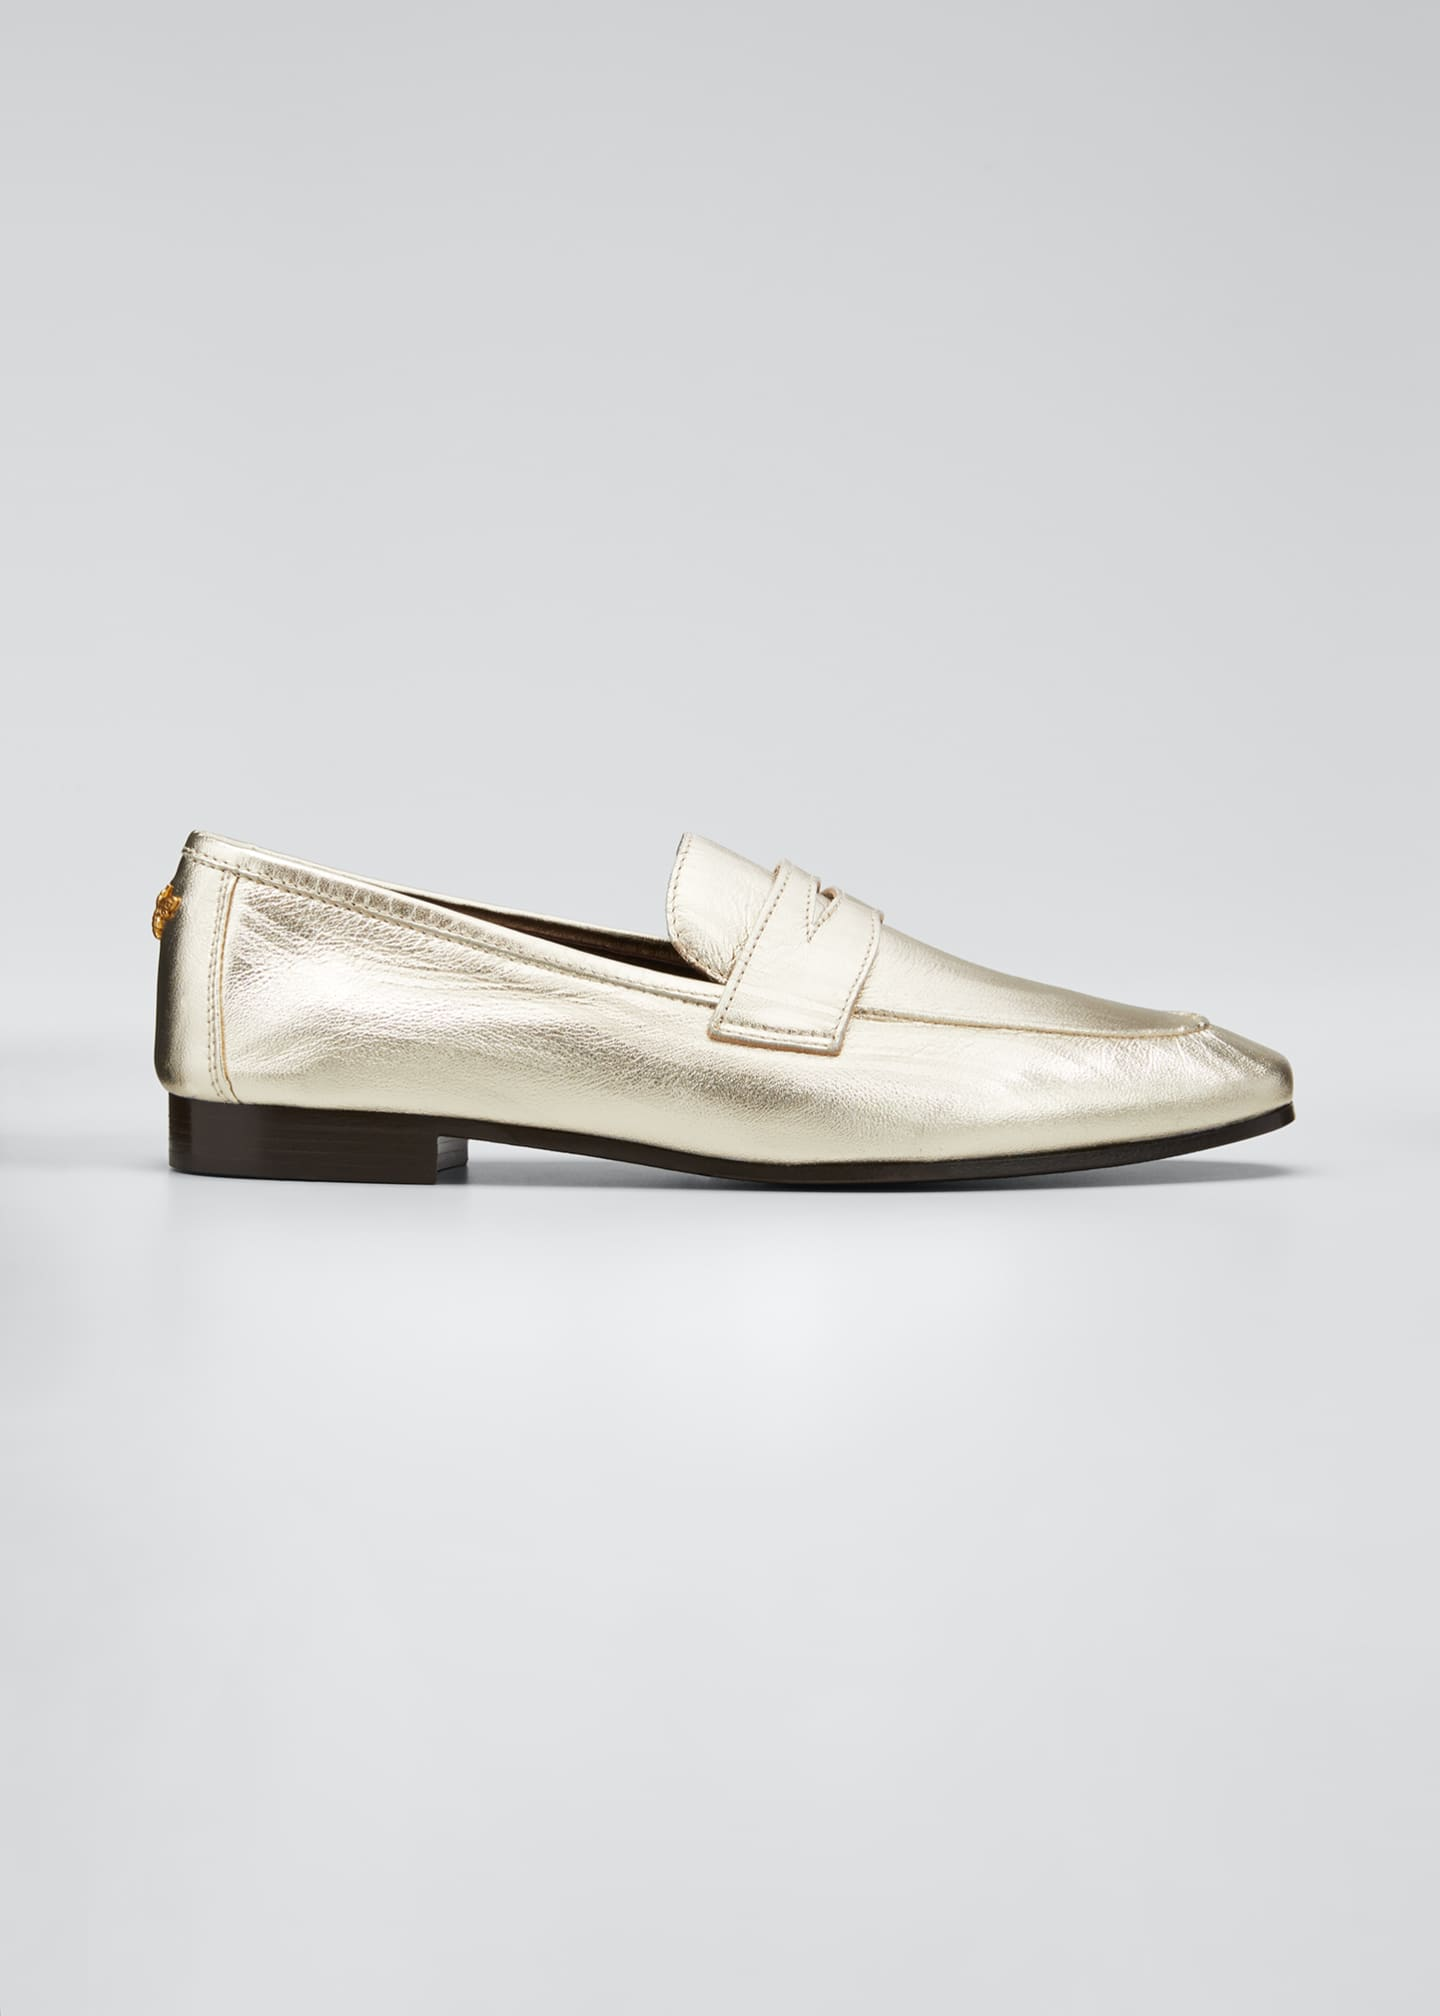 Image 1 of 5: Flaneur Metallic Leather Penny Loafers